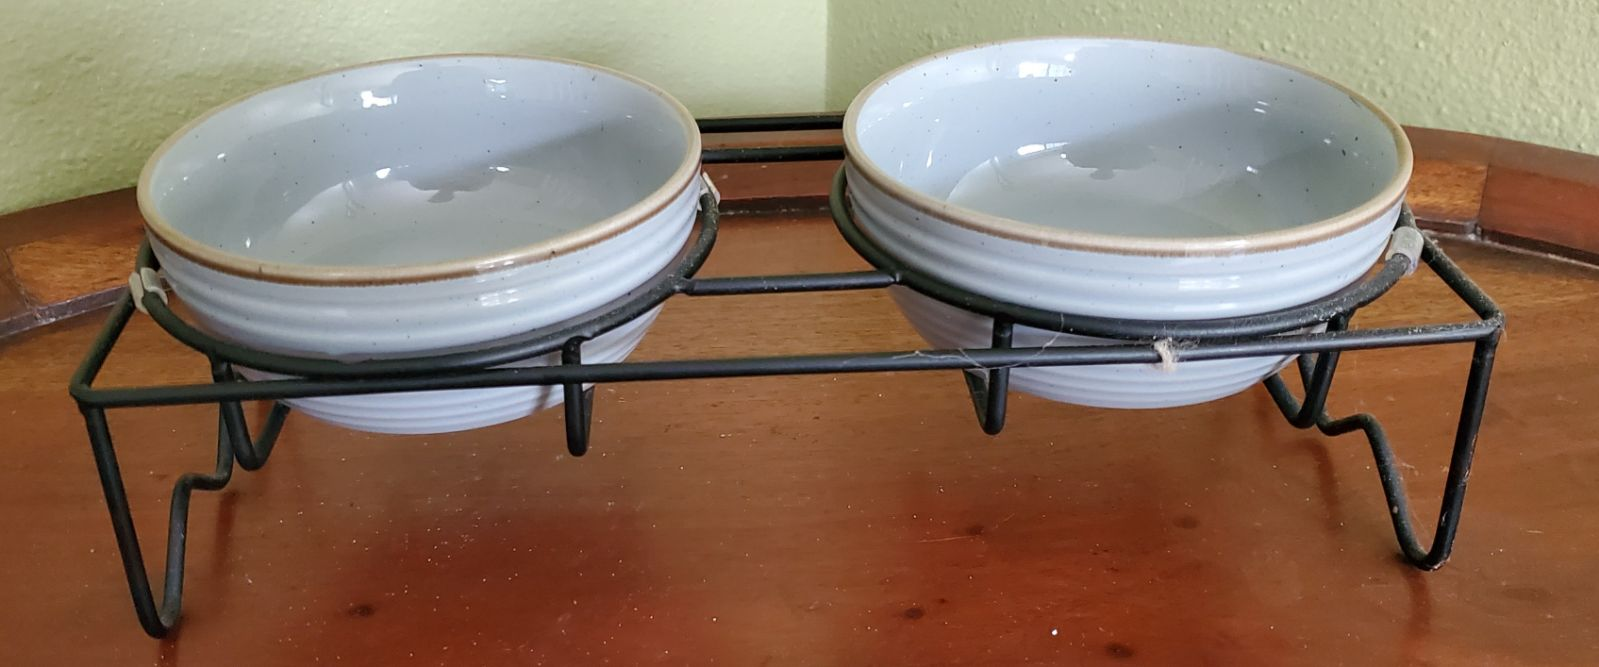 Raised Dog bowls for small dogs